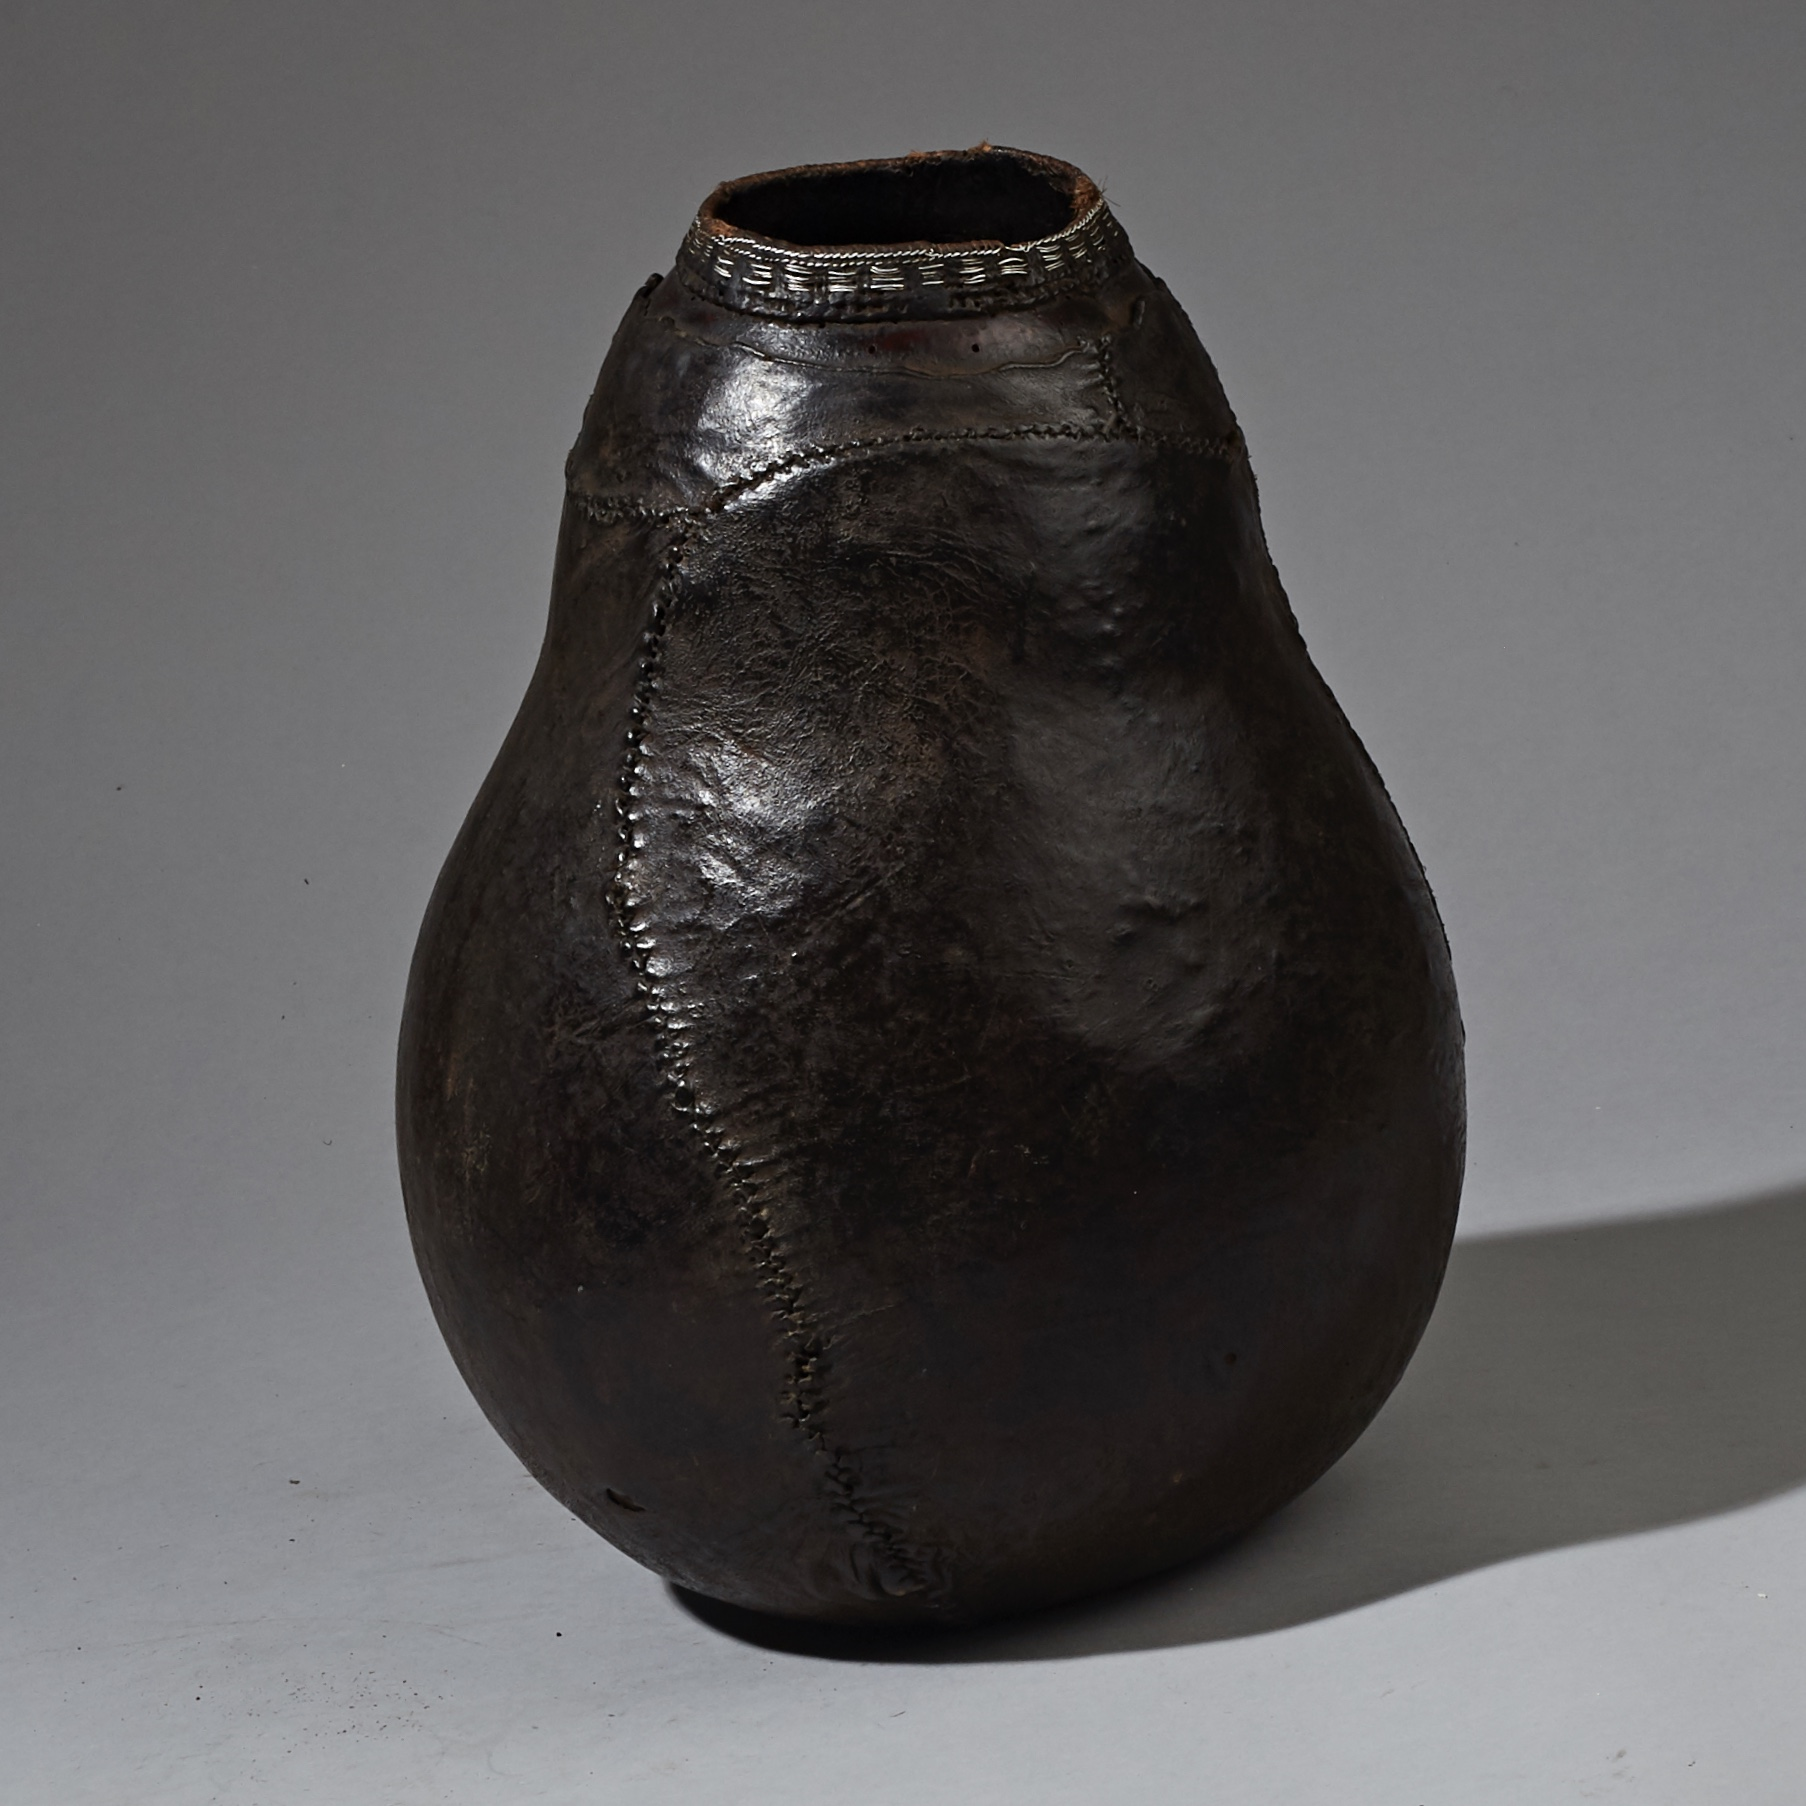 A LARGE LEATHER COVERED GOURD CONTAINER FROM BORANA TRIBE ETHIOPIA ( No 2290 )